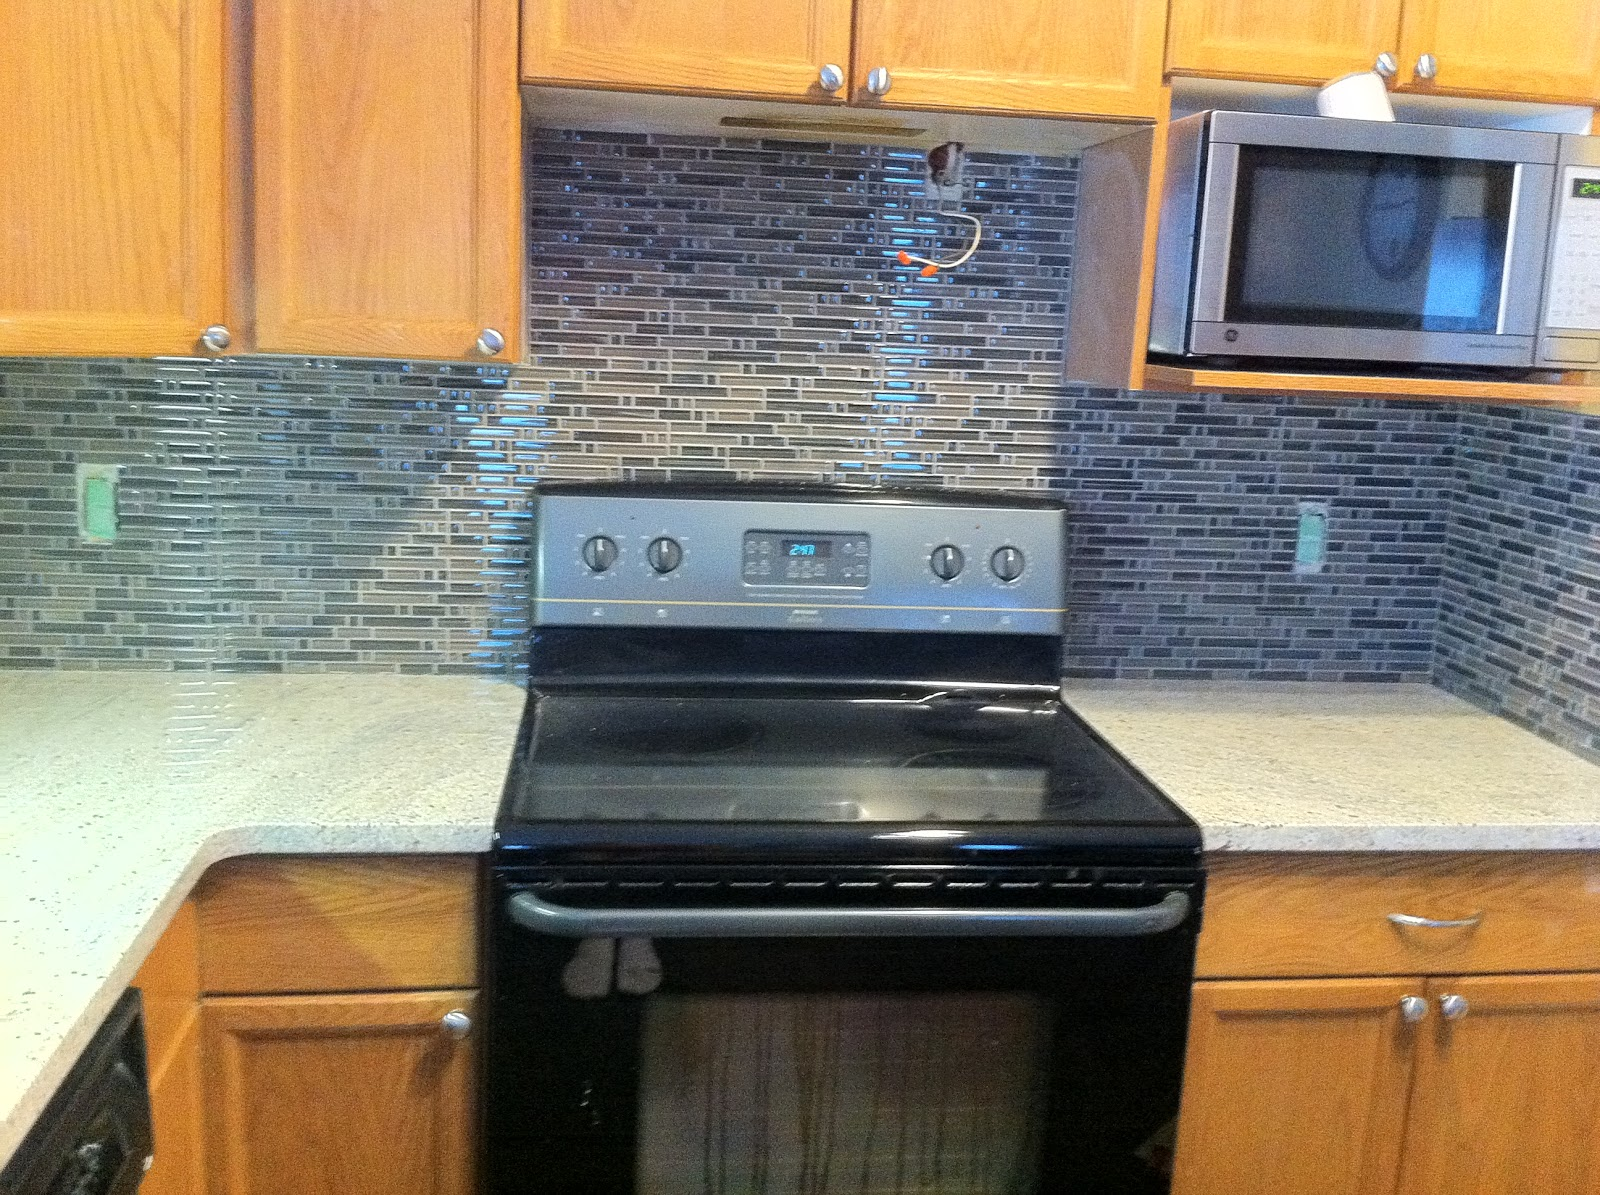 Blue Grey Glass Tile Backsplashes for Kitchens